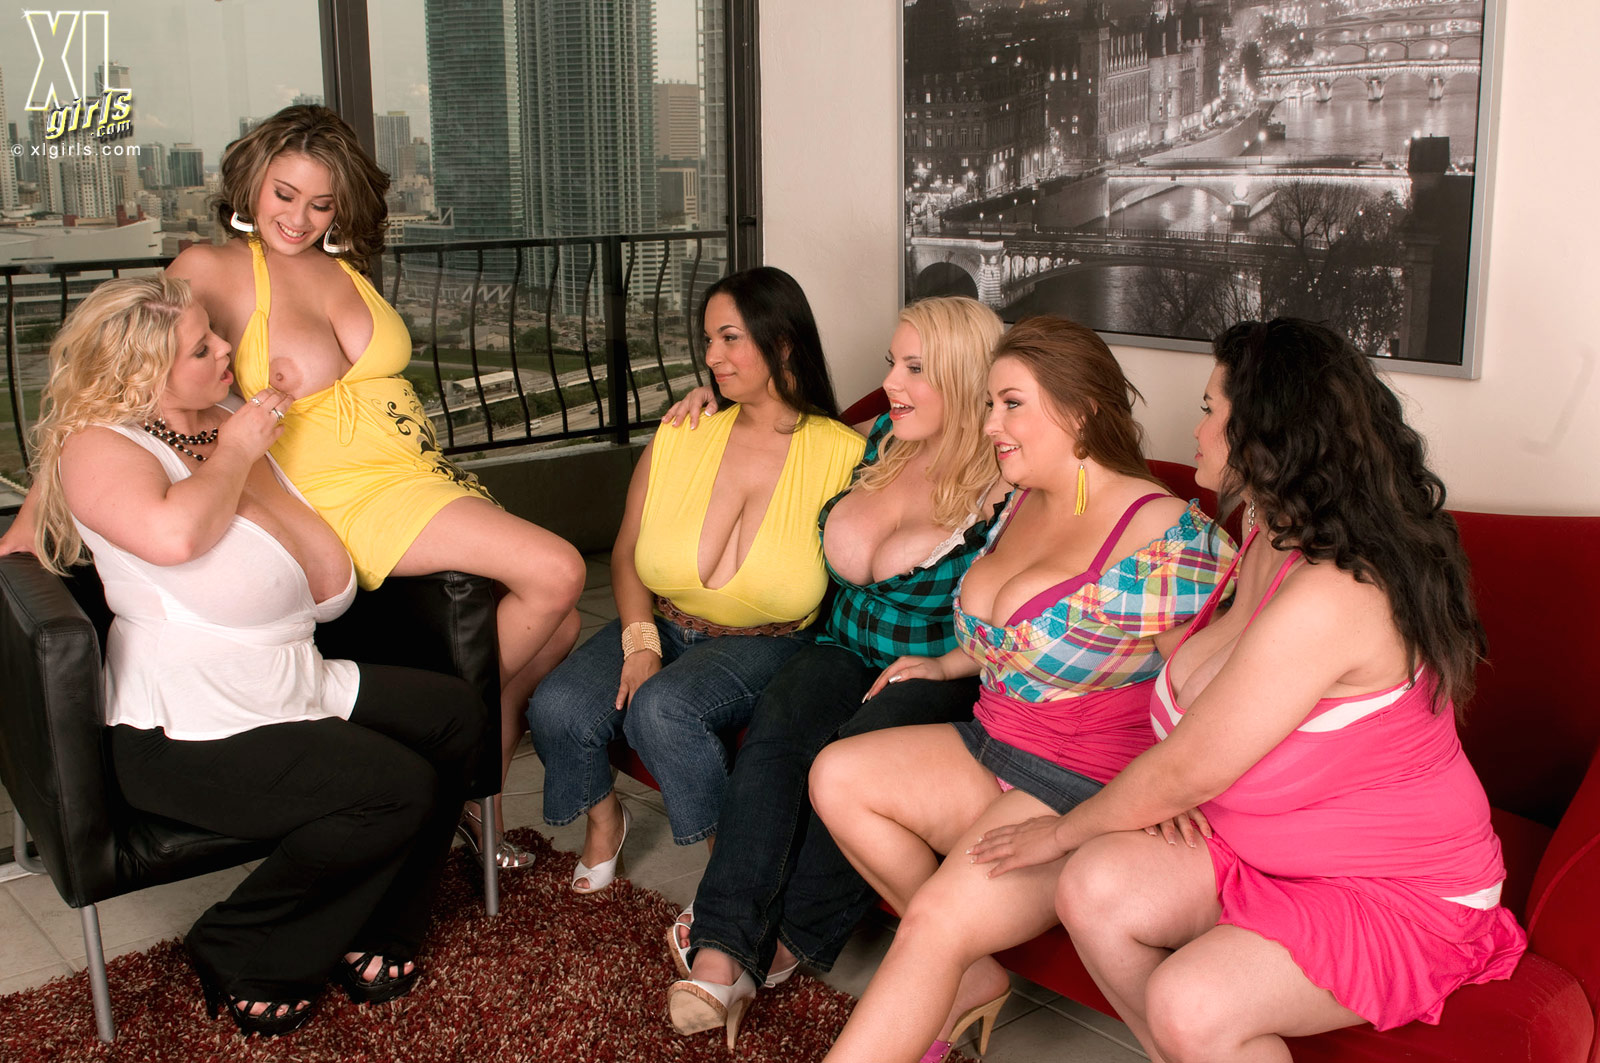 Group of women with big tits getting fucked Fucking Big Breasts Group Sex Pictures Pass